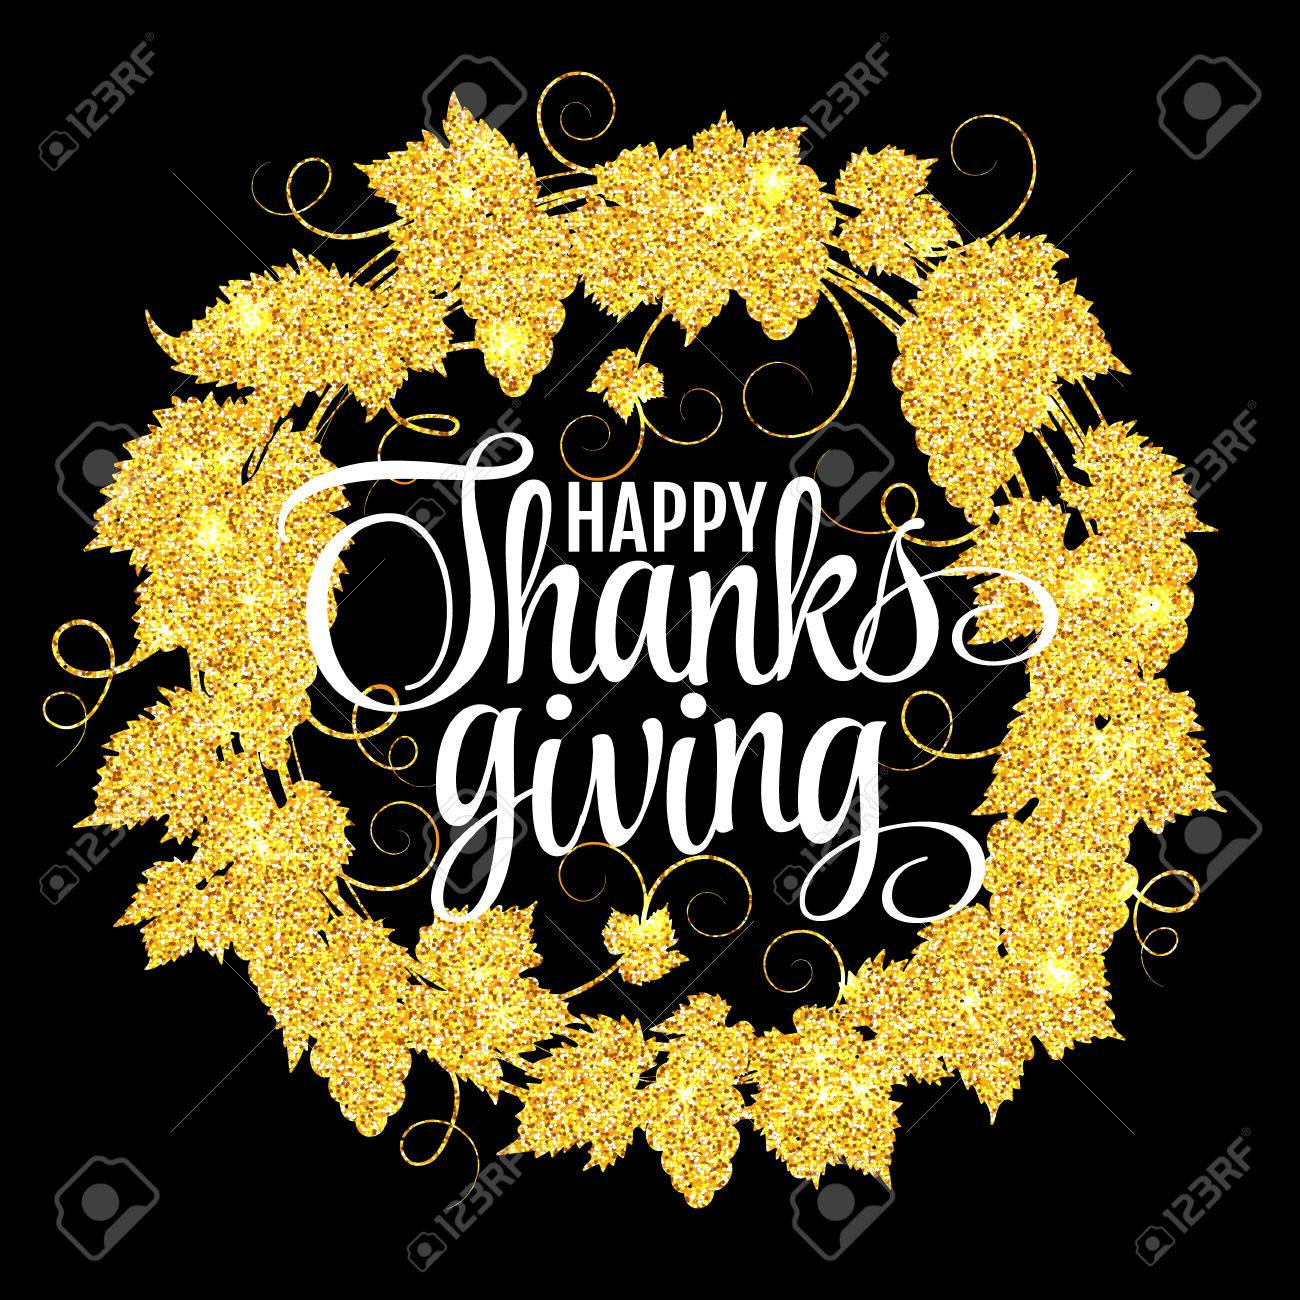 Happy Thanksgiving Day, give thanks, autumn gold glitter design.